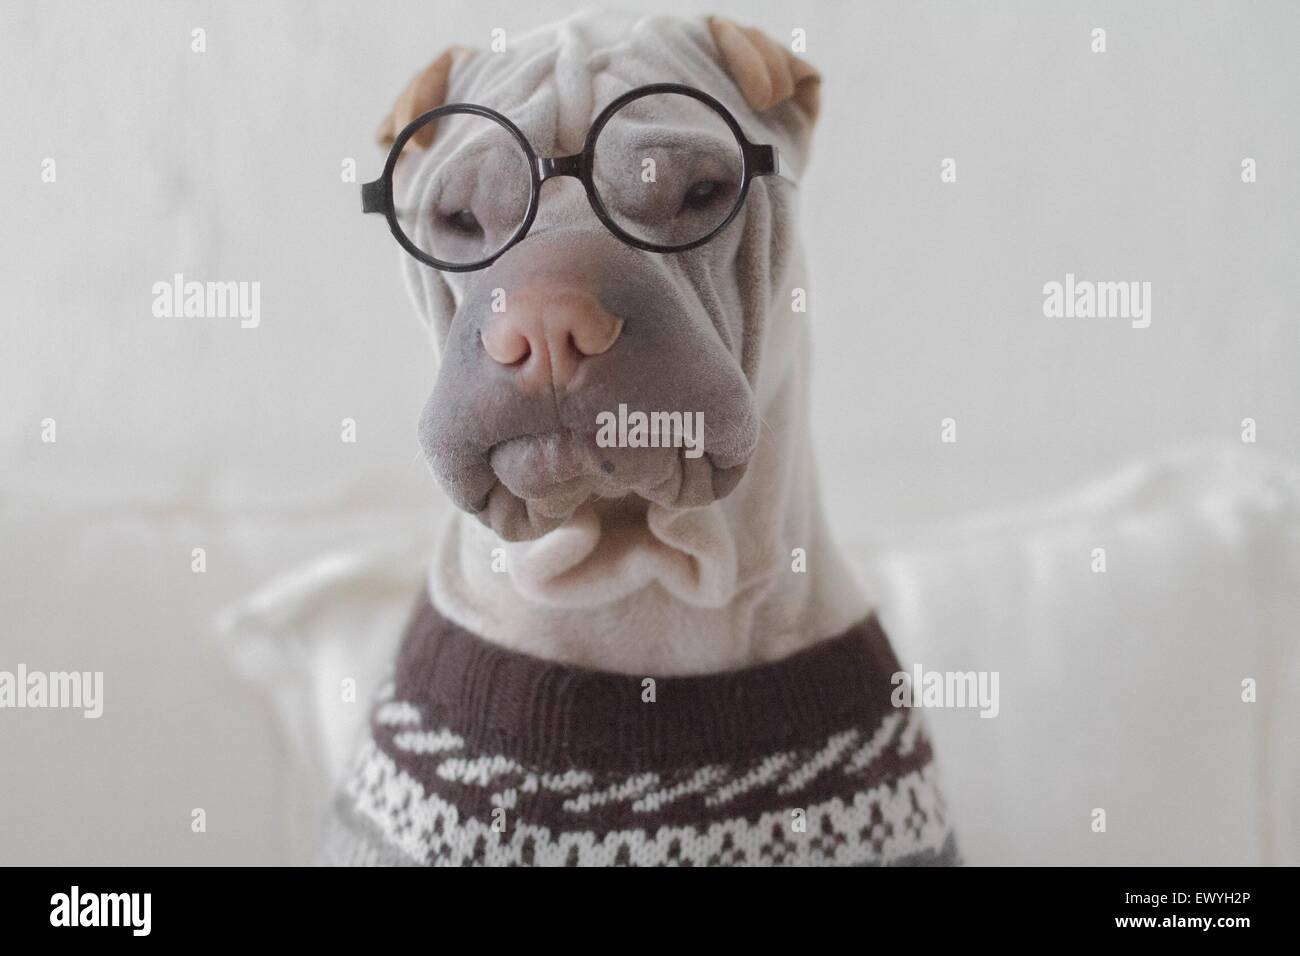 Portrait of a shar pei dog looking intellectual - Stock Image